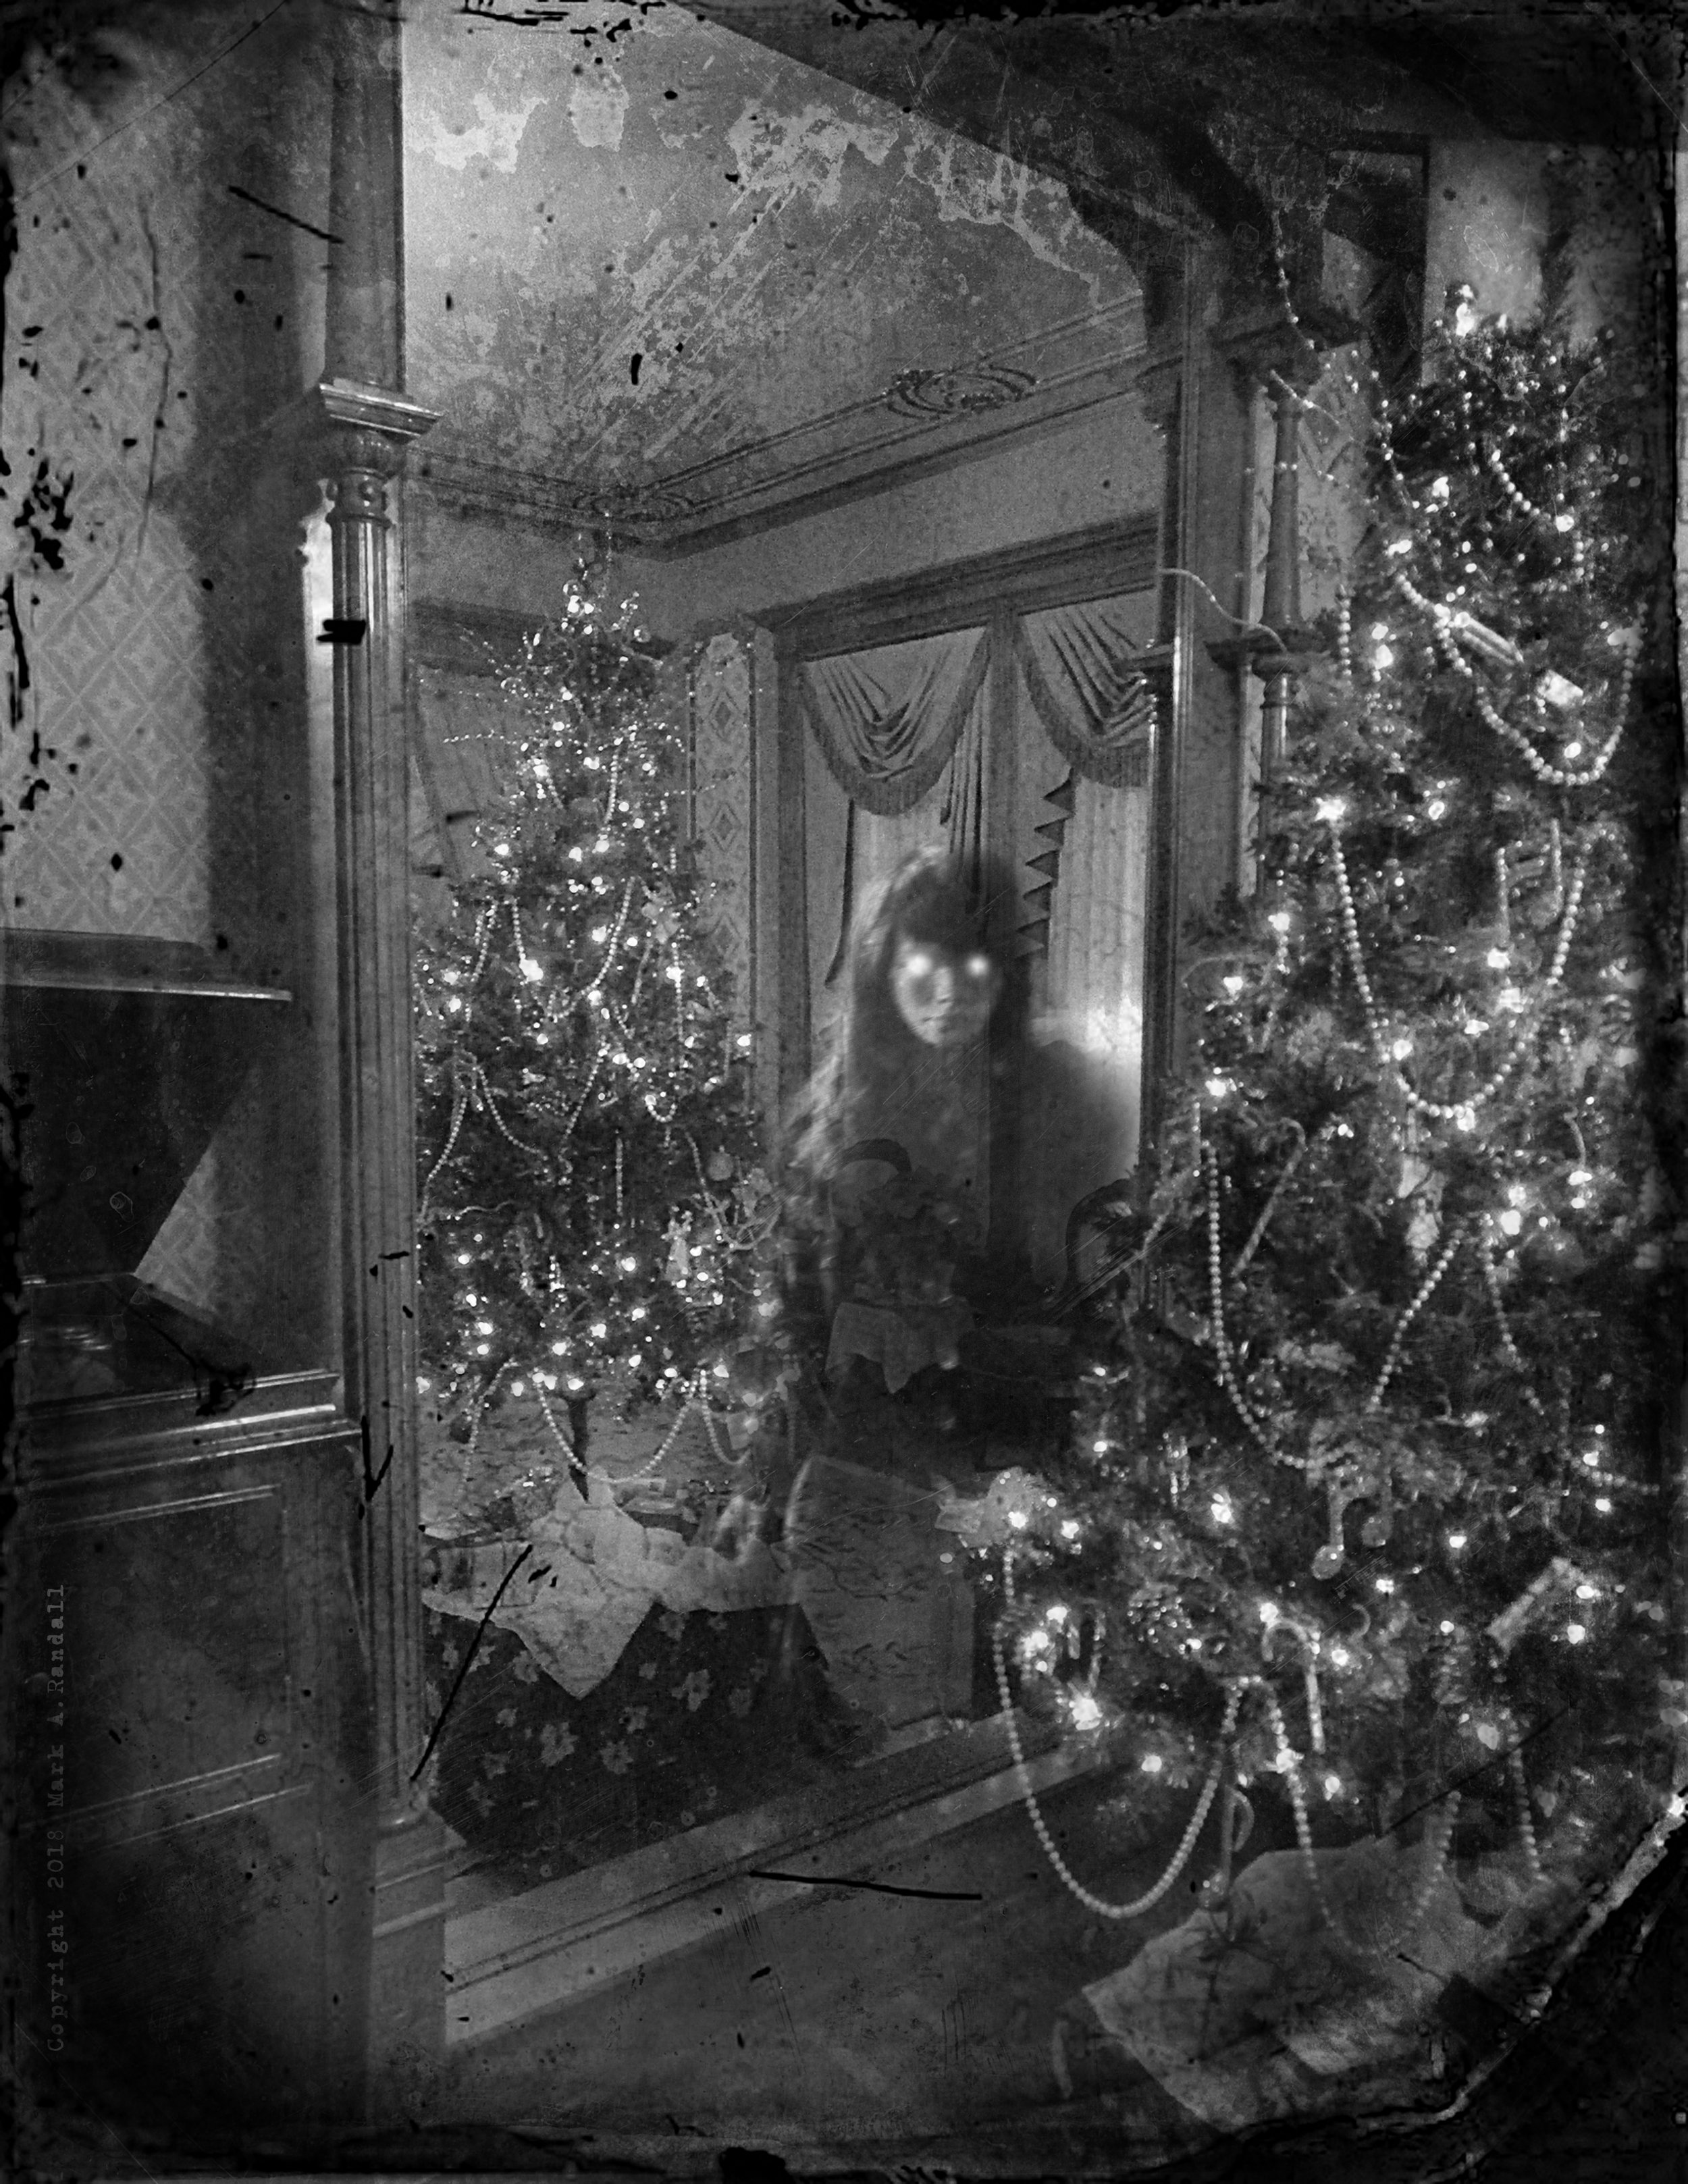 2018 singular fortean haunted holidays mark randall 1.jpg